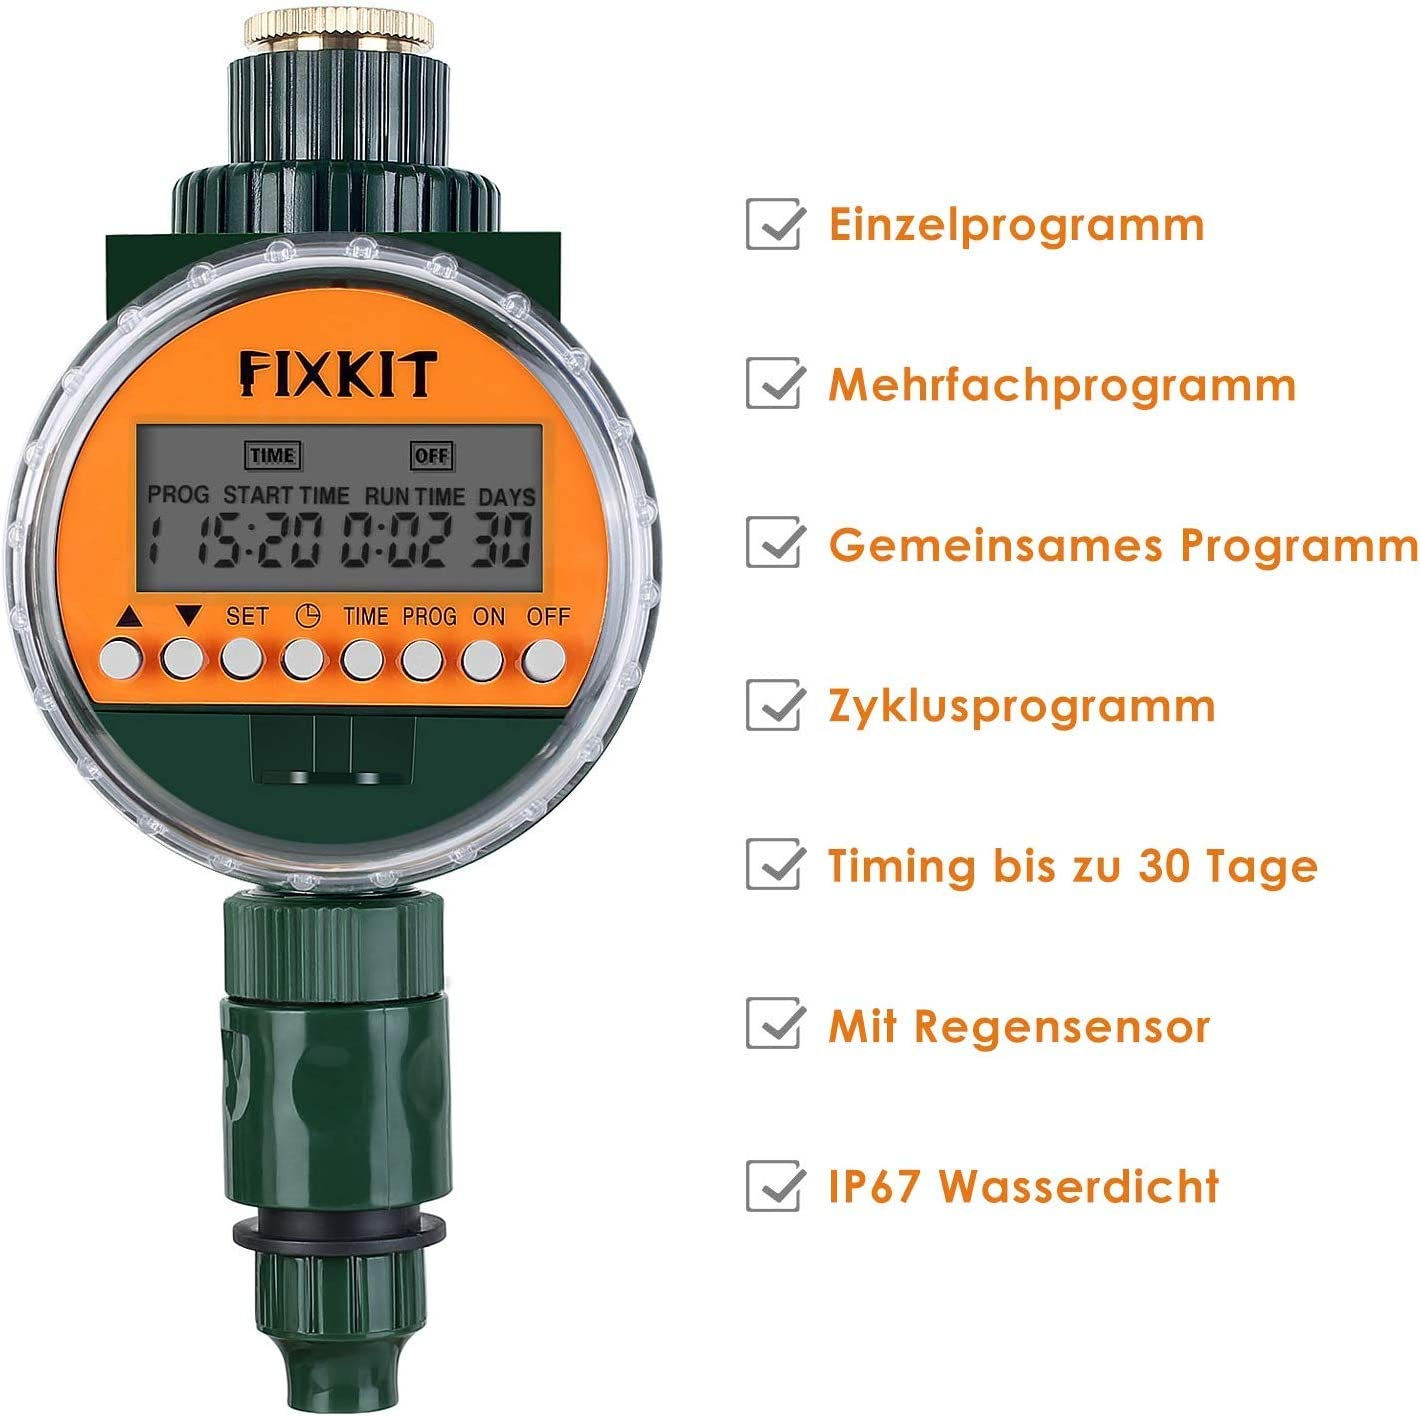 New Watering Clock Automatic Watering for Garden Plant Fixkit Electronic Water Timer Timer with LCD Display Digital Watering Controller